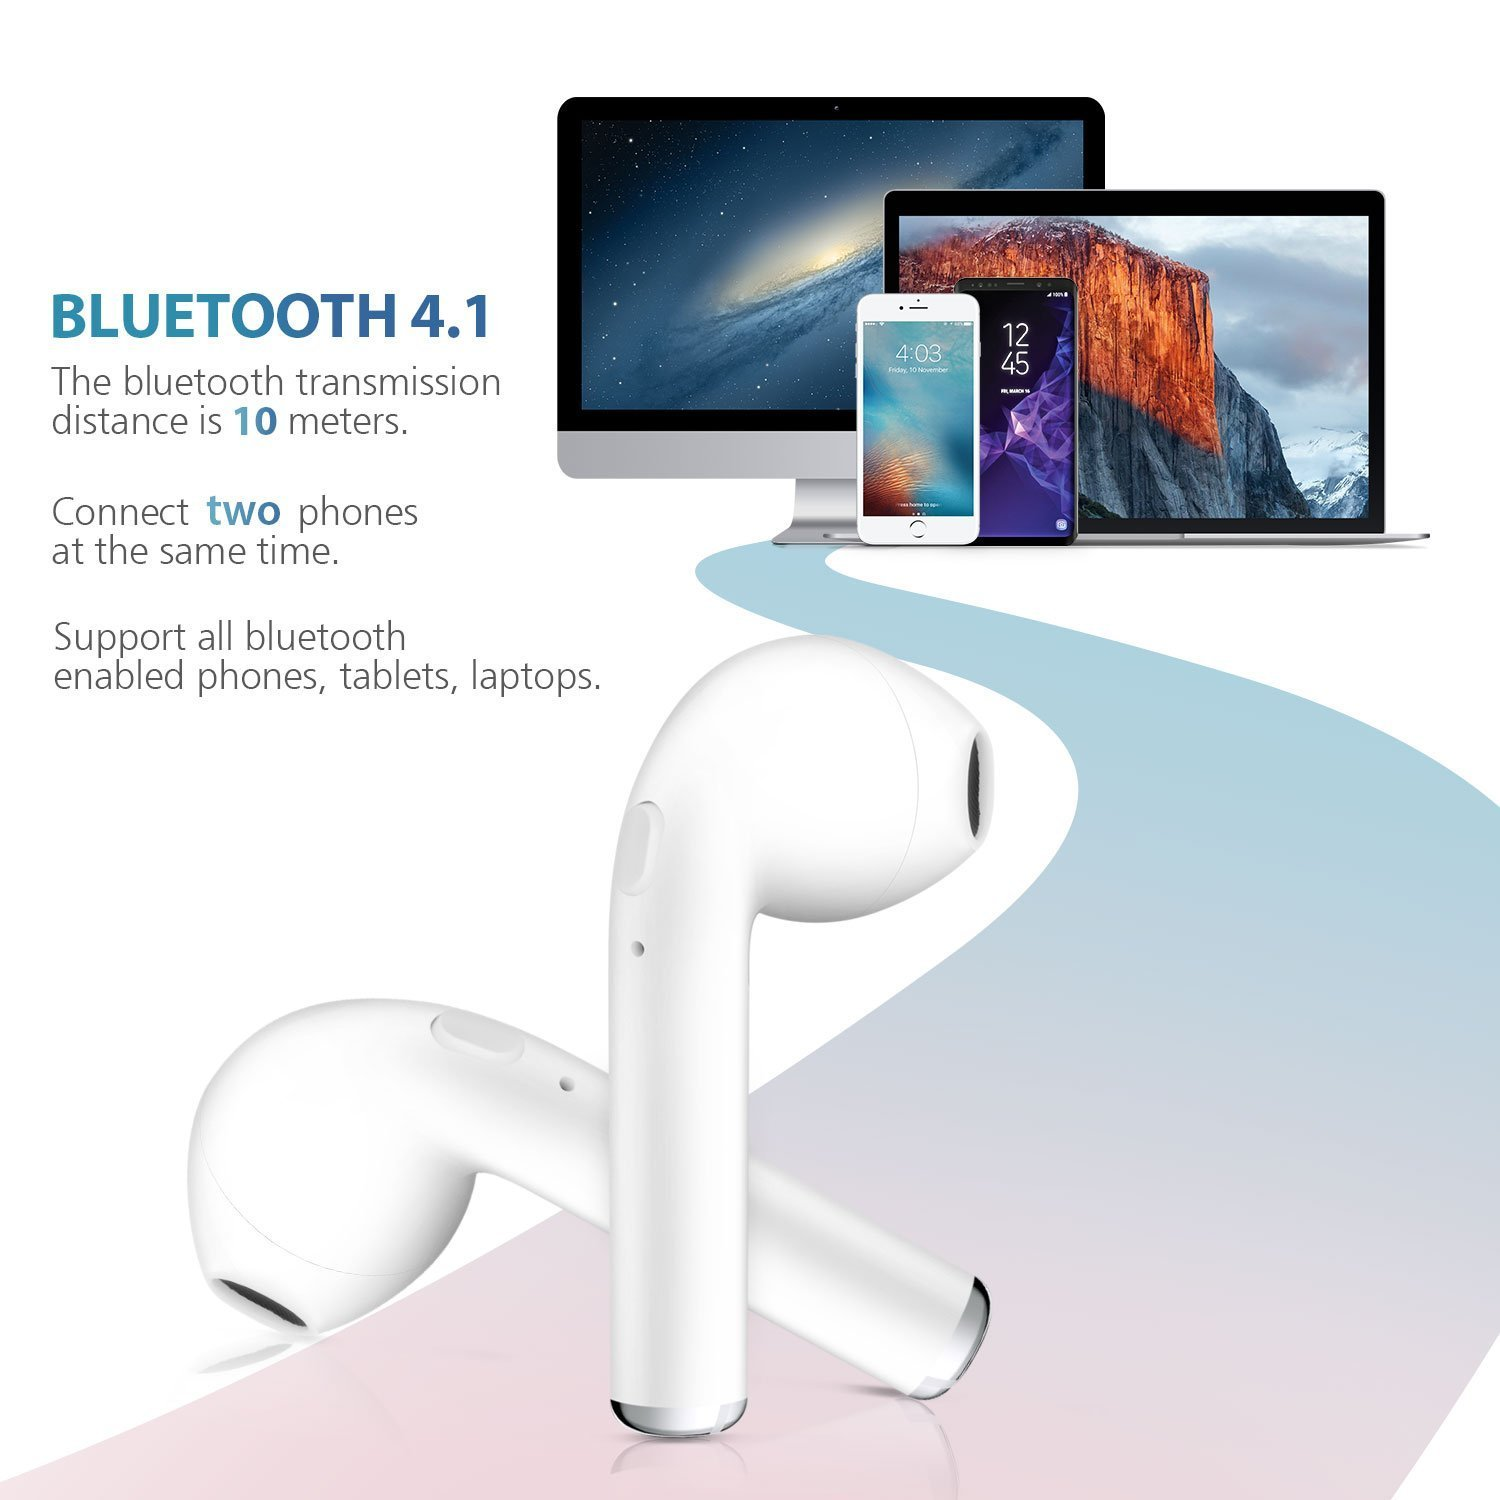 Amazon.com: Bluetooth Headset, Mini Wireless Sports Headphones/Stereo Earbuds, Sweatproof Headphones with Noise Canceling and Charging Kit for iPhone X 8 ...